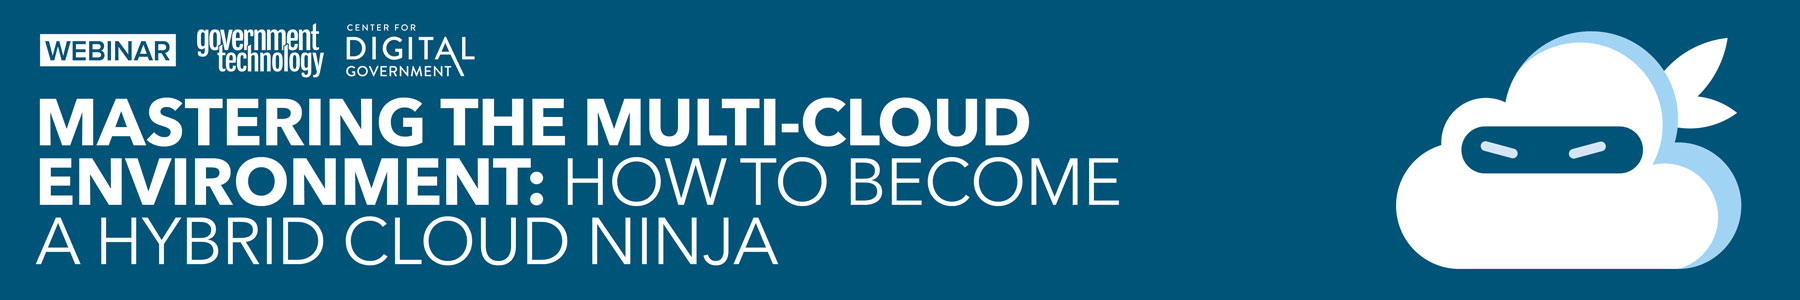 Mastering the Multi-Cloud Environment: How to Become a Hybrid Cloud Ninja